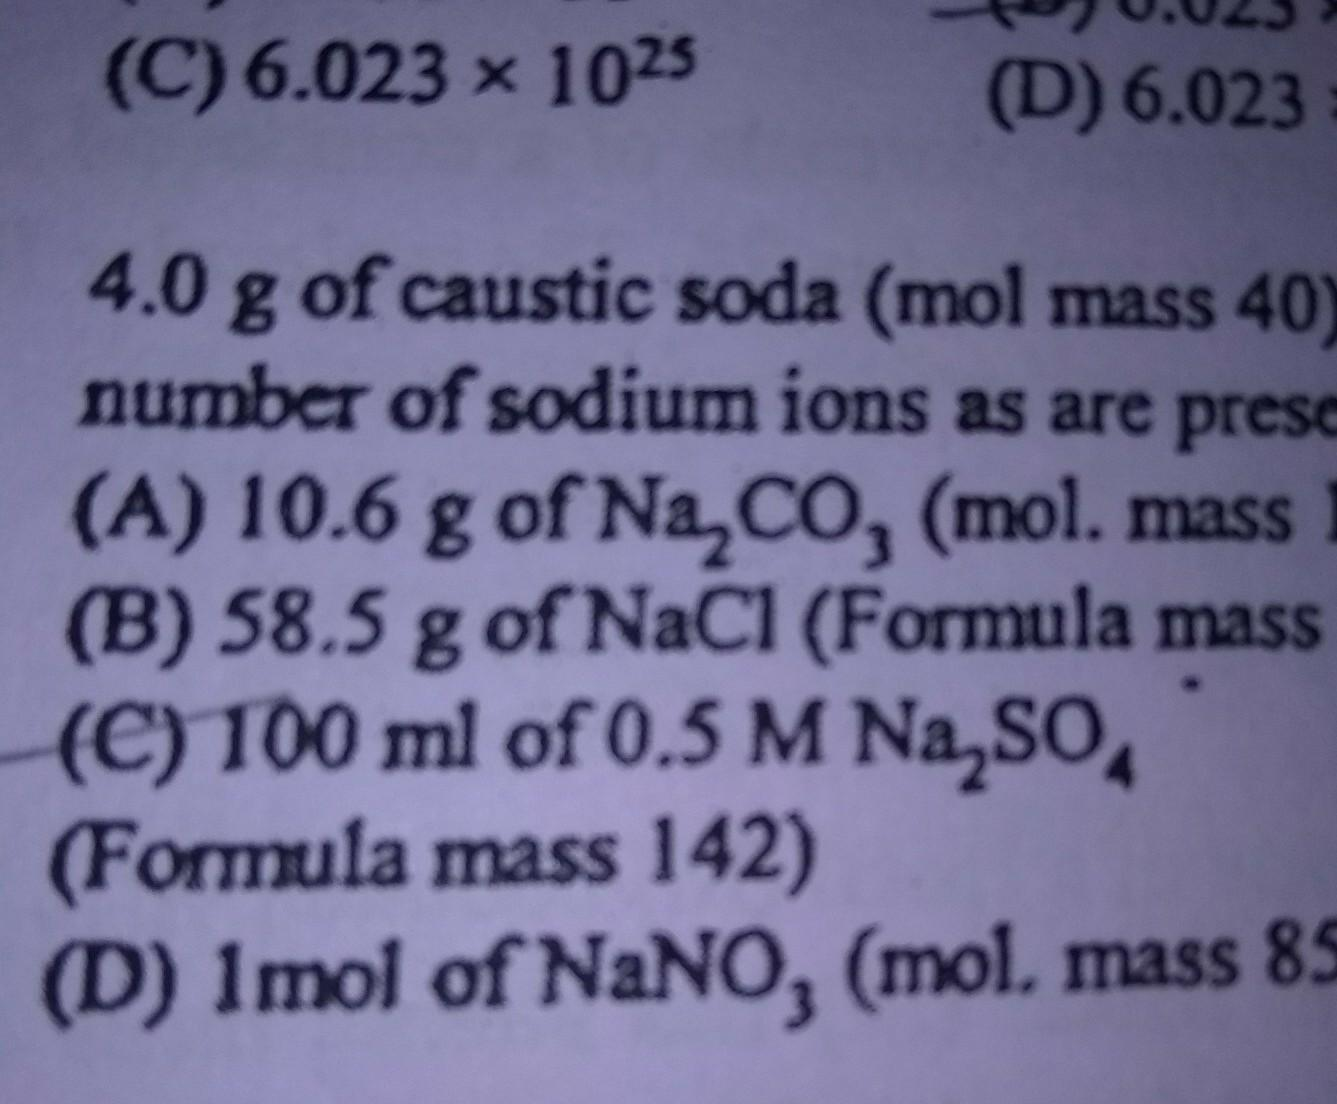 4 0 g of caustic soda (mol mass 40) contains samenumber of